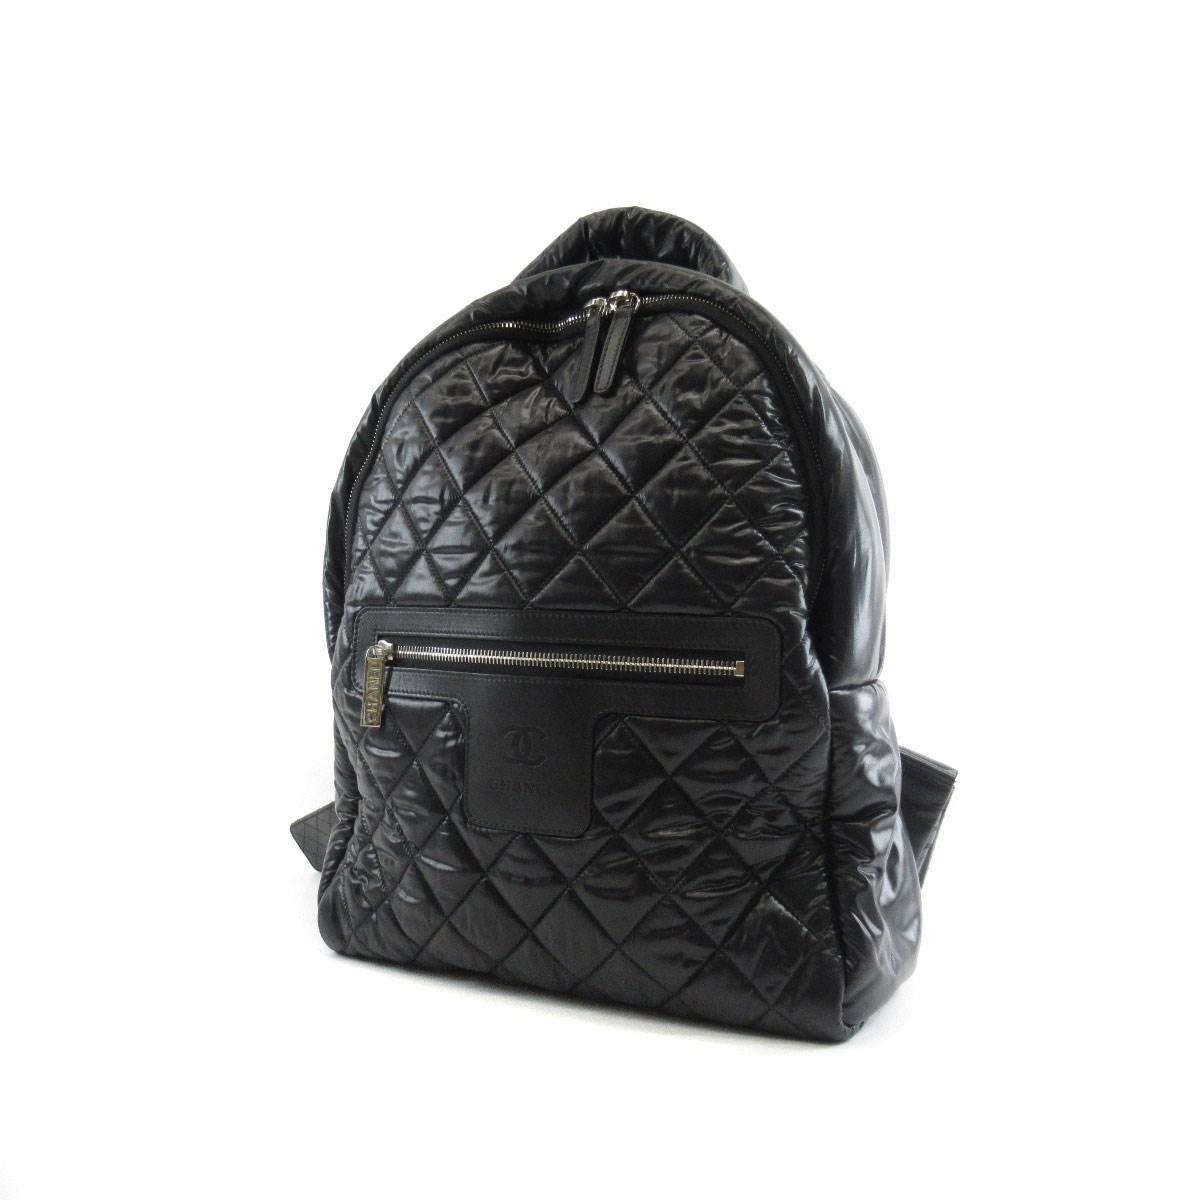 5a65d3bed893a9 Lyst - Chanel Nylon Backpack · Daypack Coco Cocoon in Black